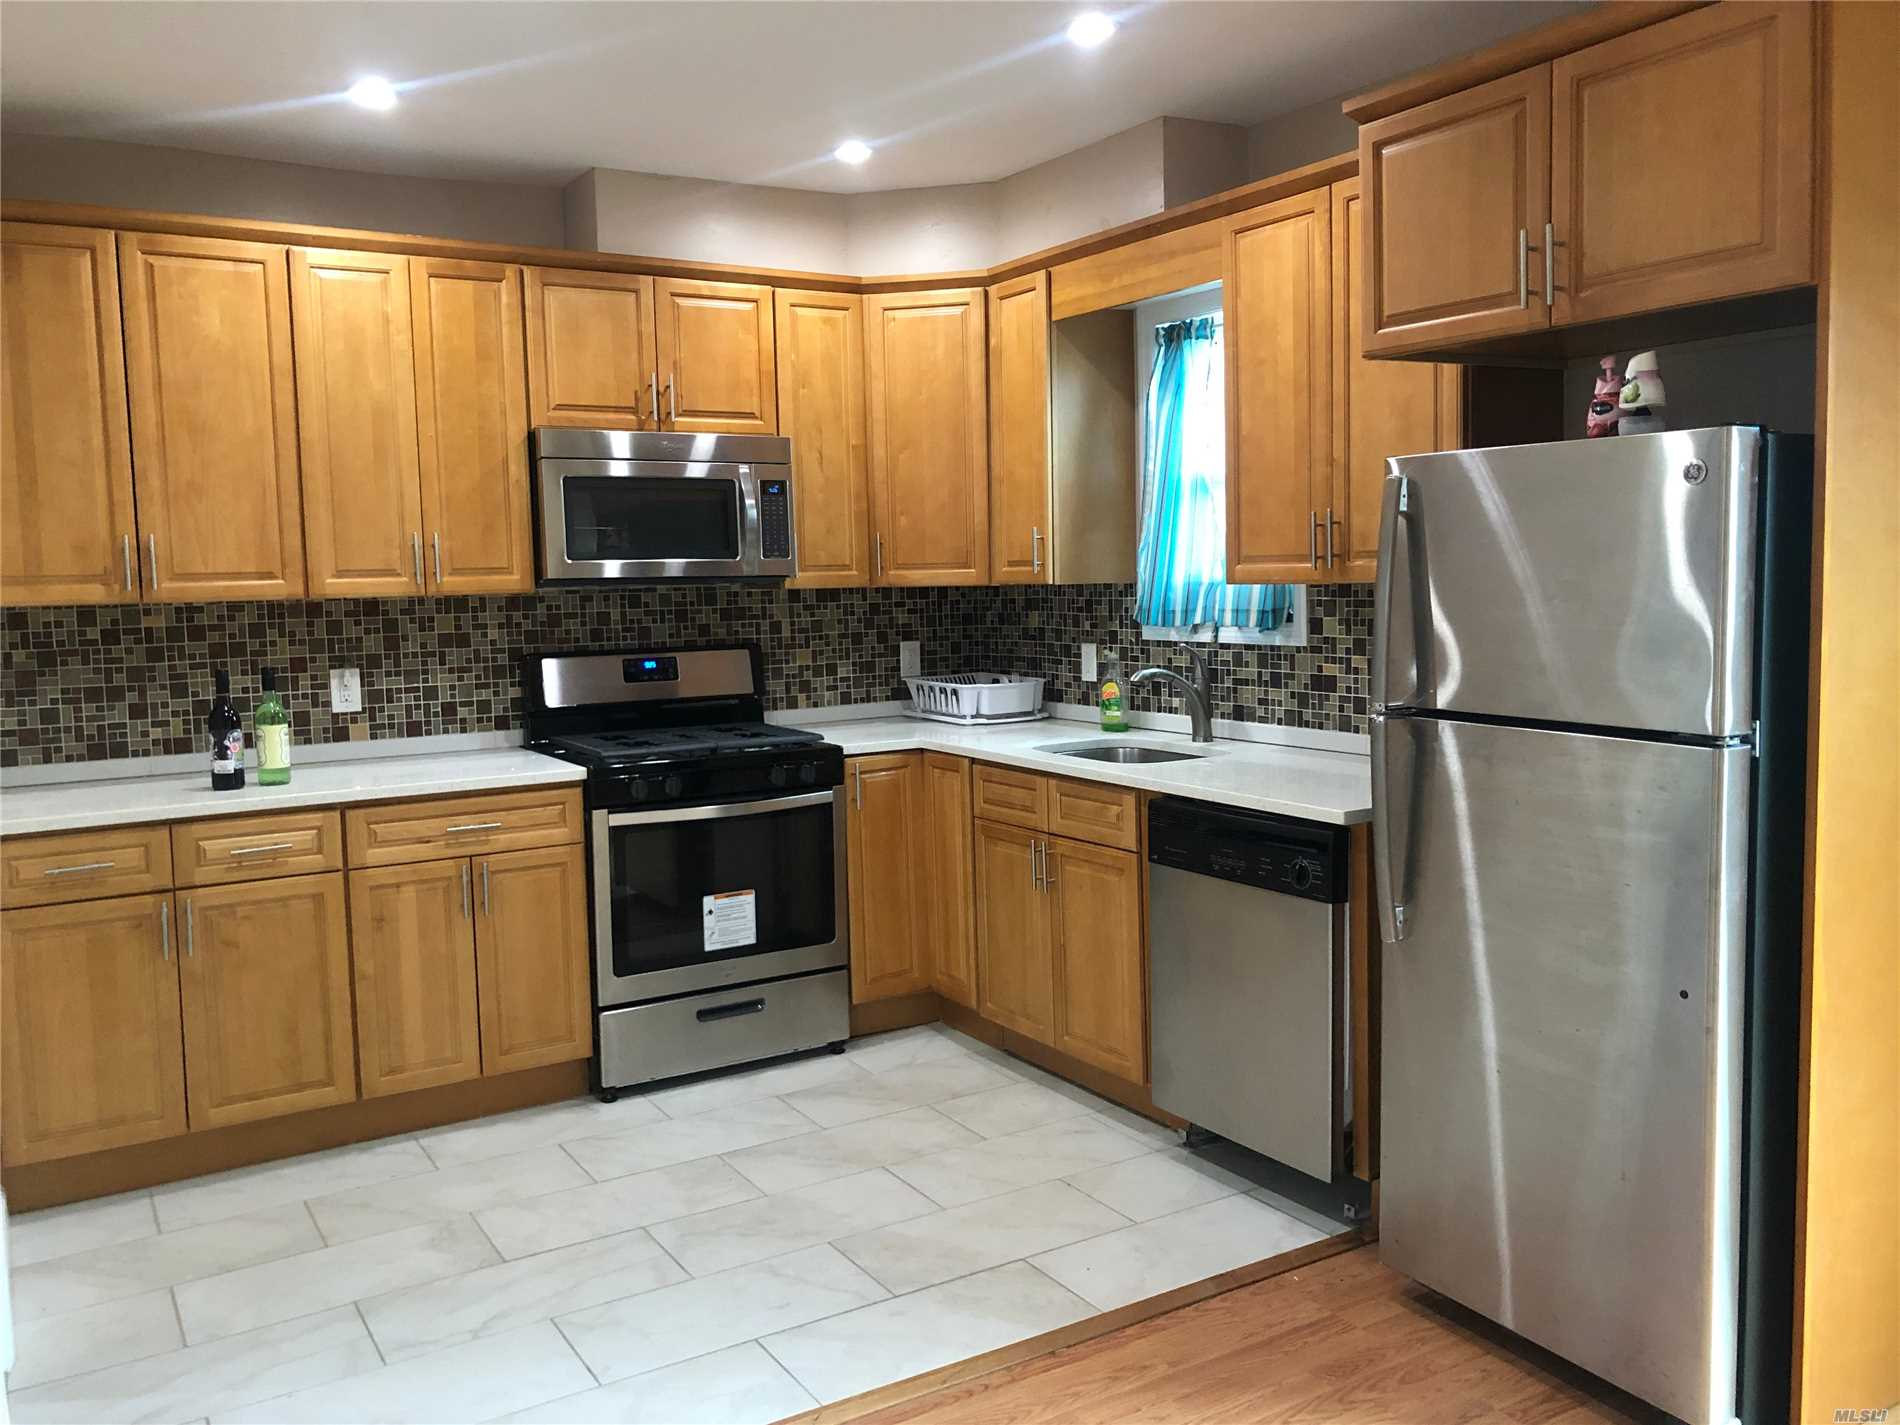 Great, Legal 2 Family features Renovated Kitchen and Baths, Granite and Stainless Steel Appliances. Convenient to Transportation (Buses and M Train), Shopping! 1